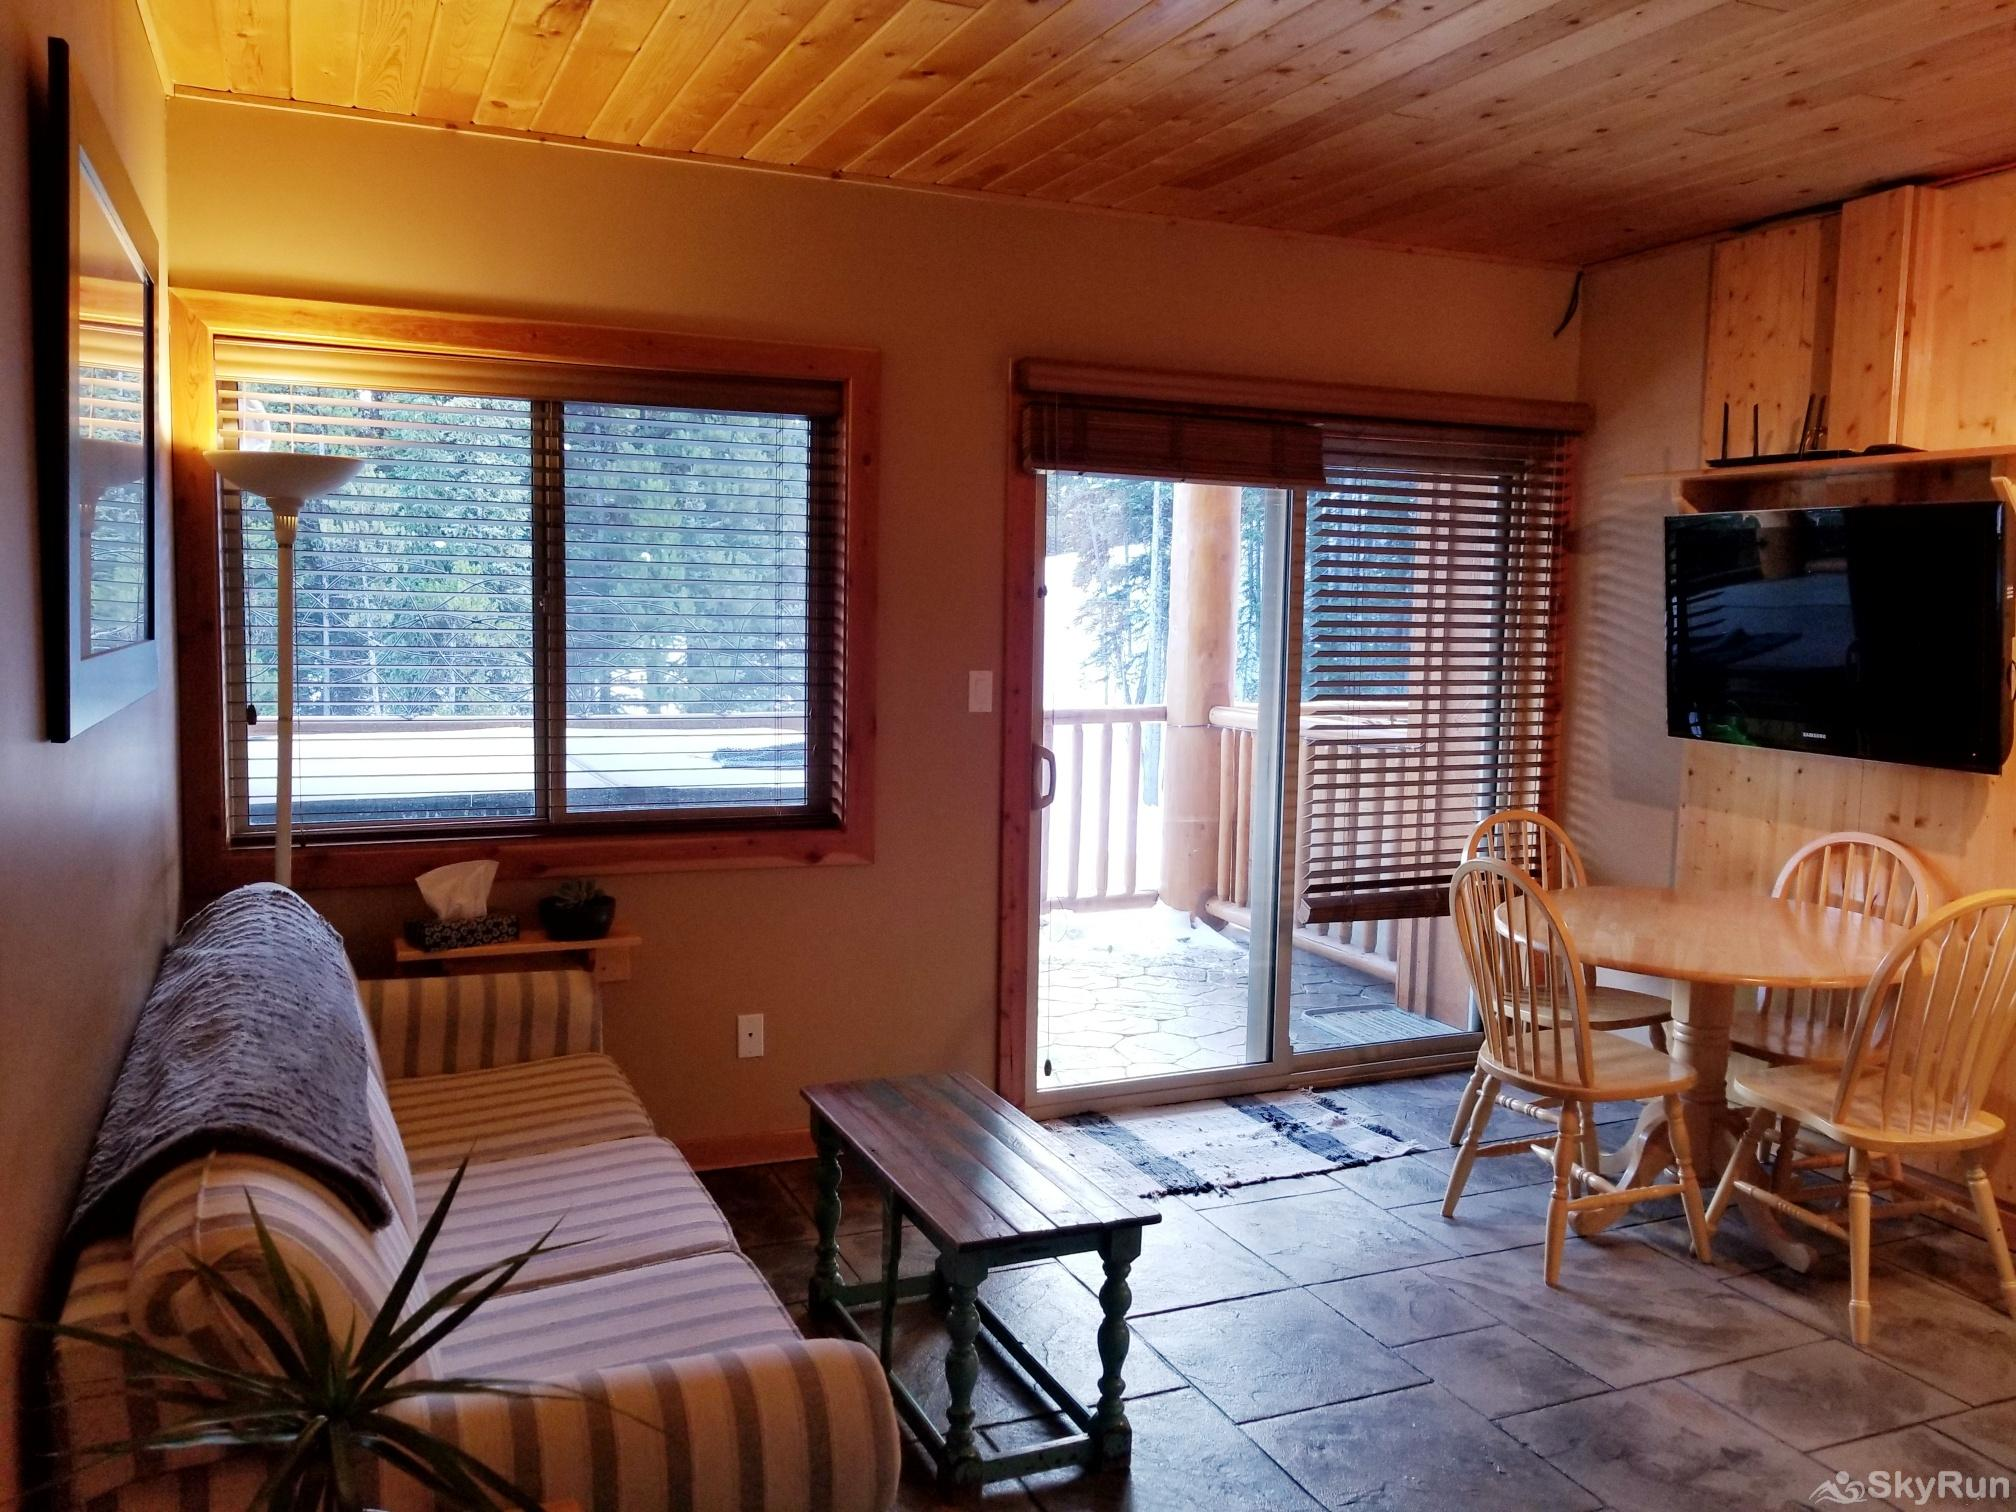 Silver Bullet 1 bedroom with hot tub Living Room - Views of the ski out trail